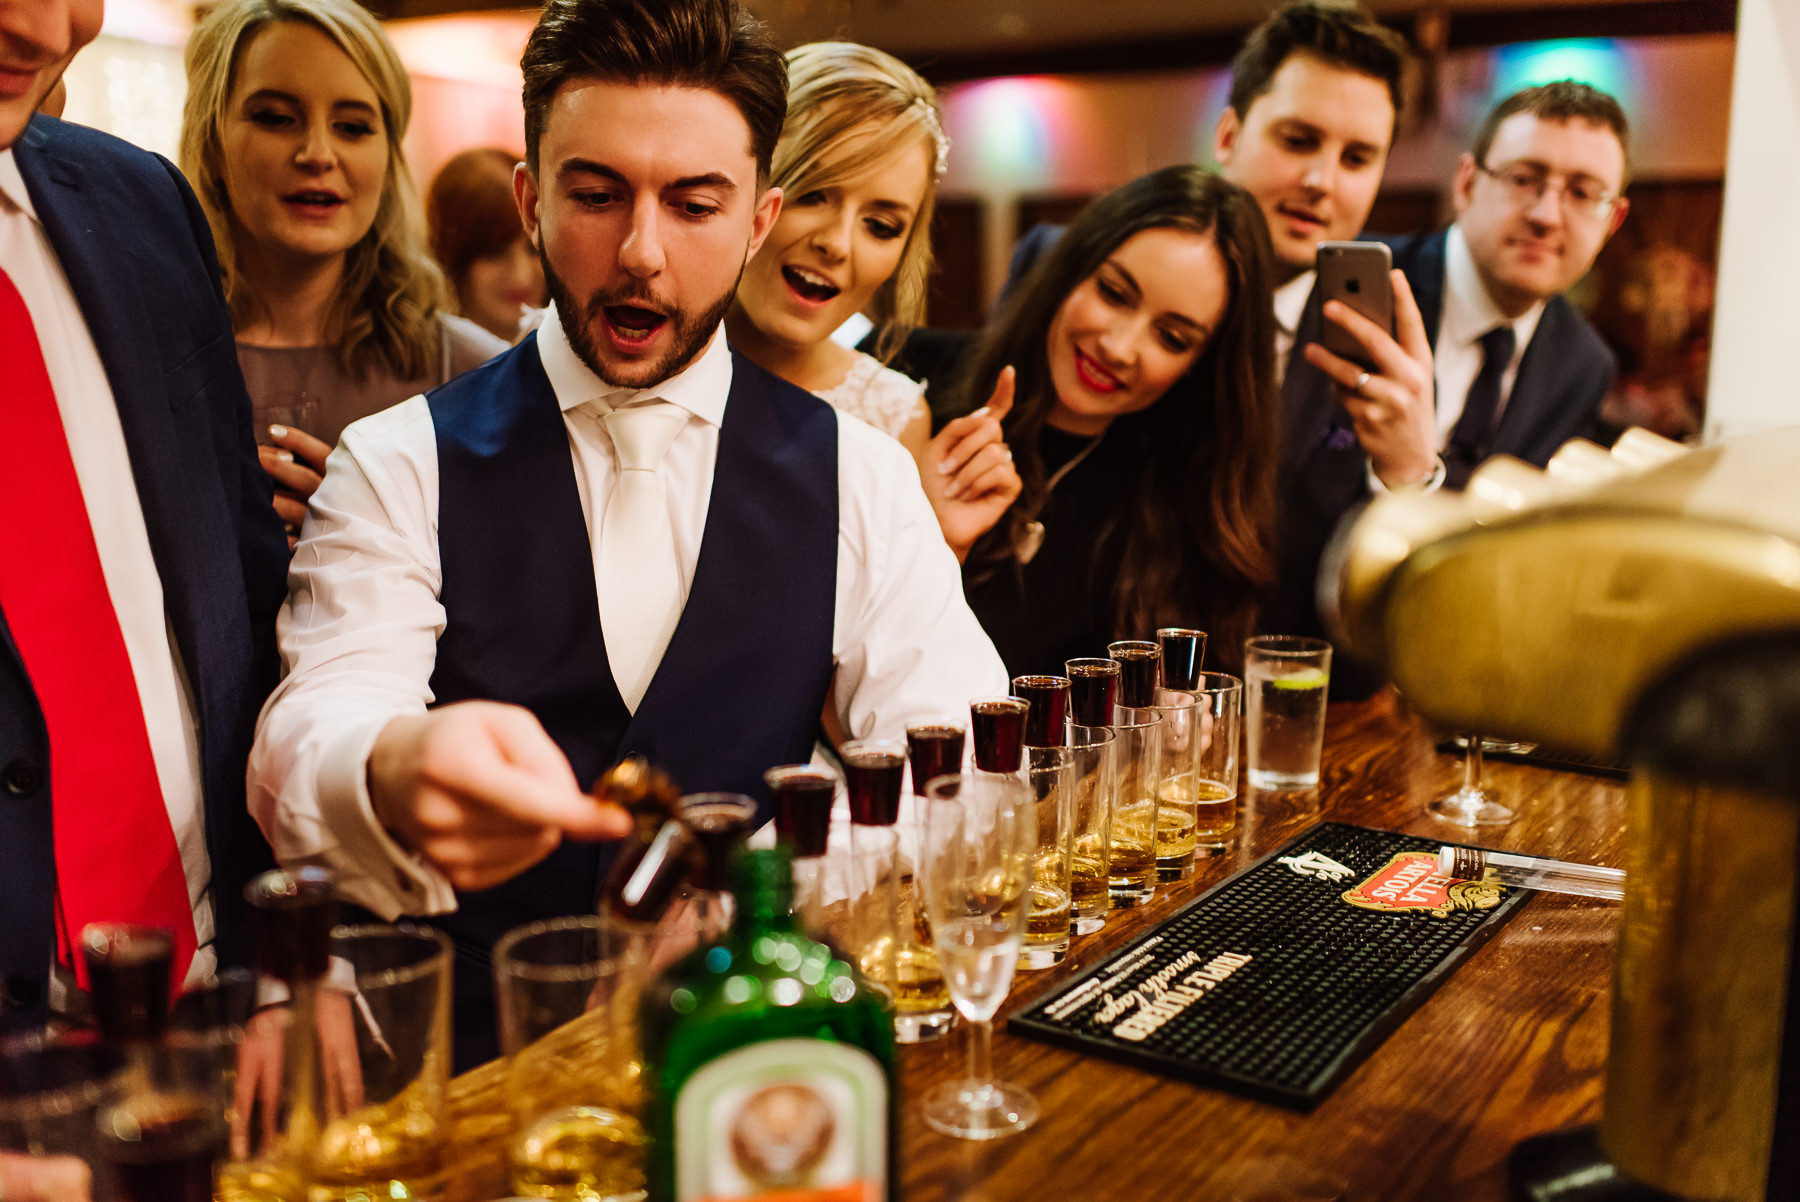 Katie and Sam drinking jaegerbombs on their wedding day